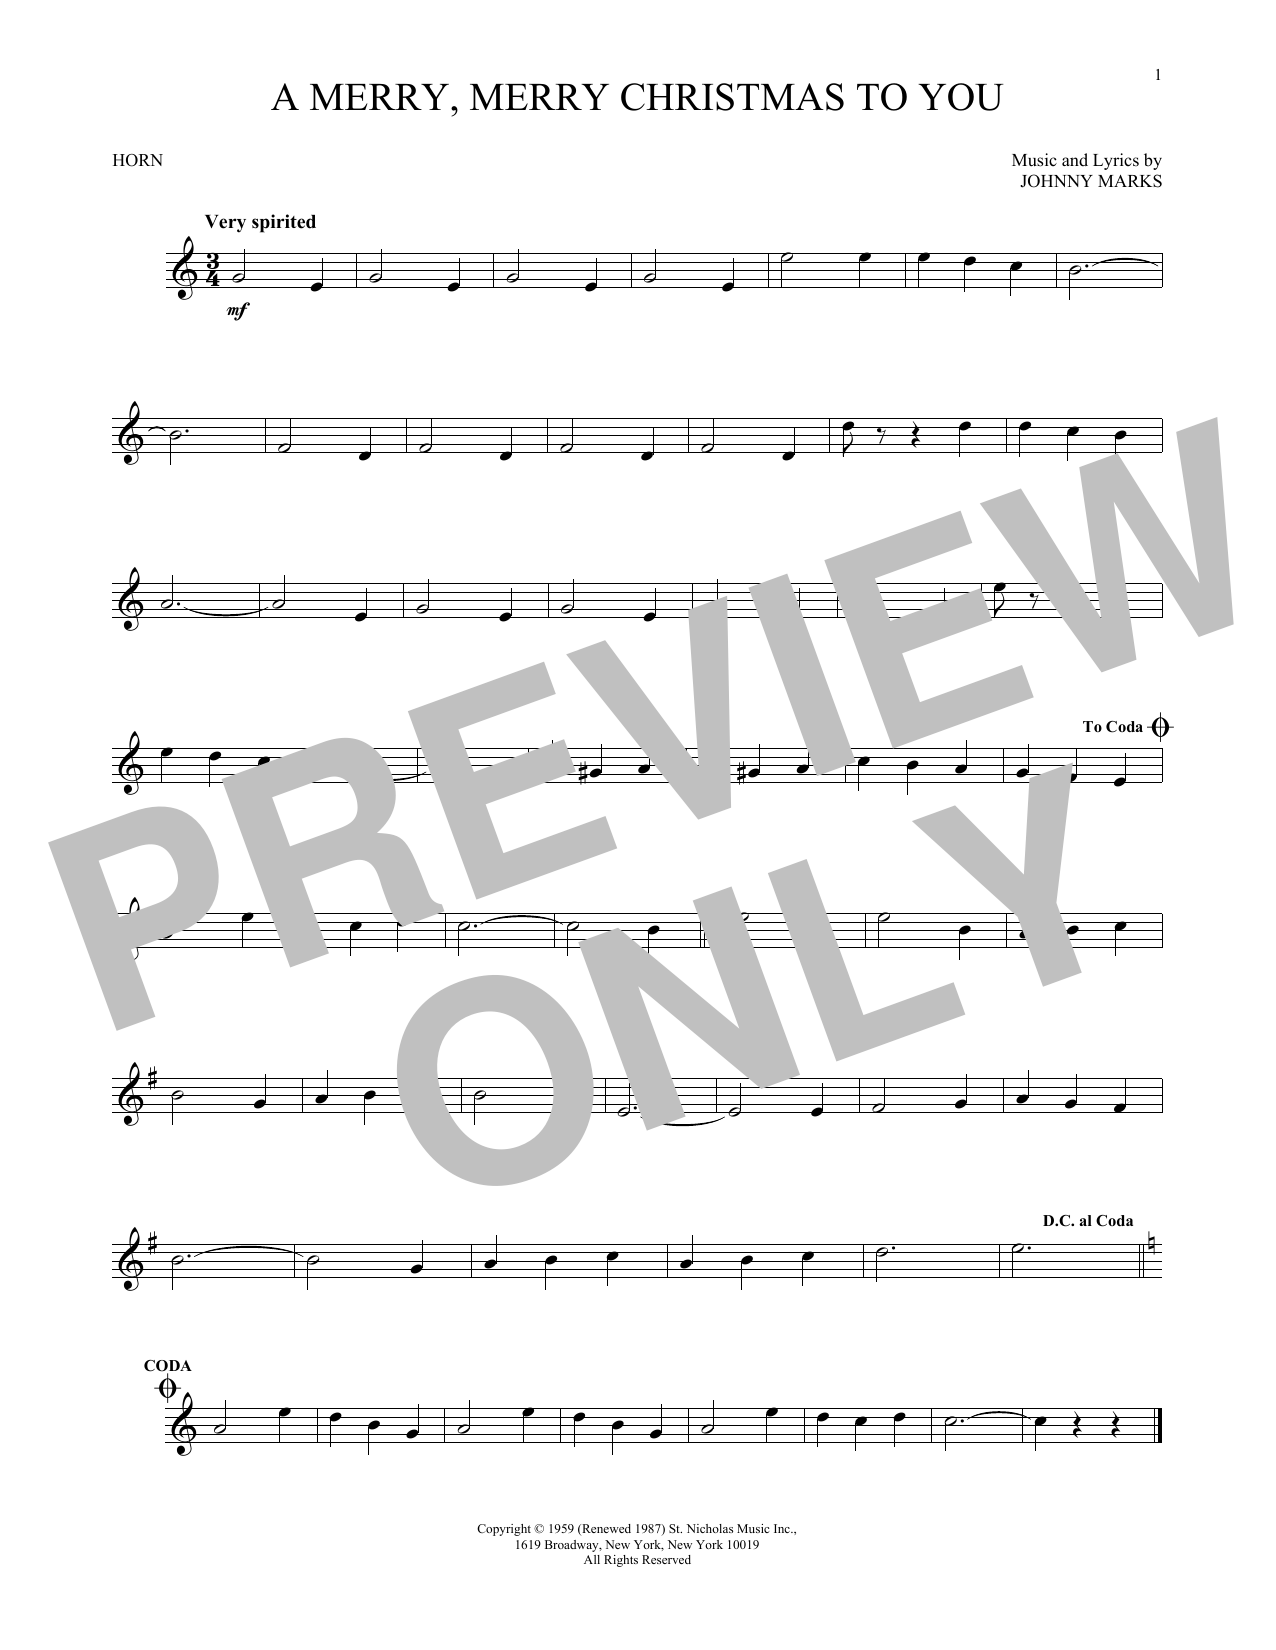 A Merry, Merry Christmas To You (French Horn Solo)